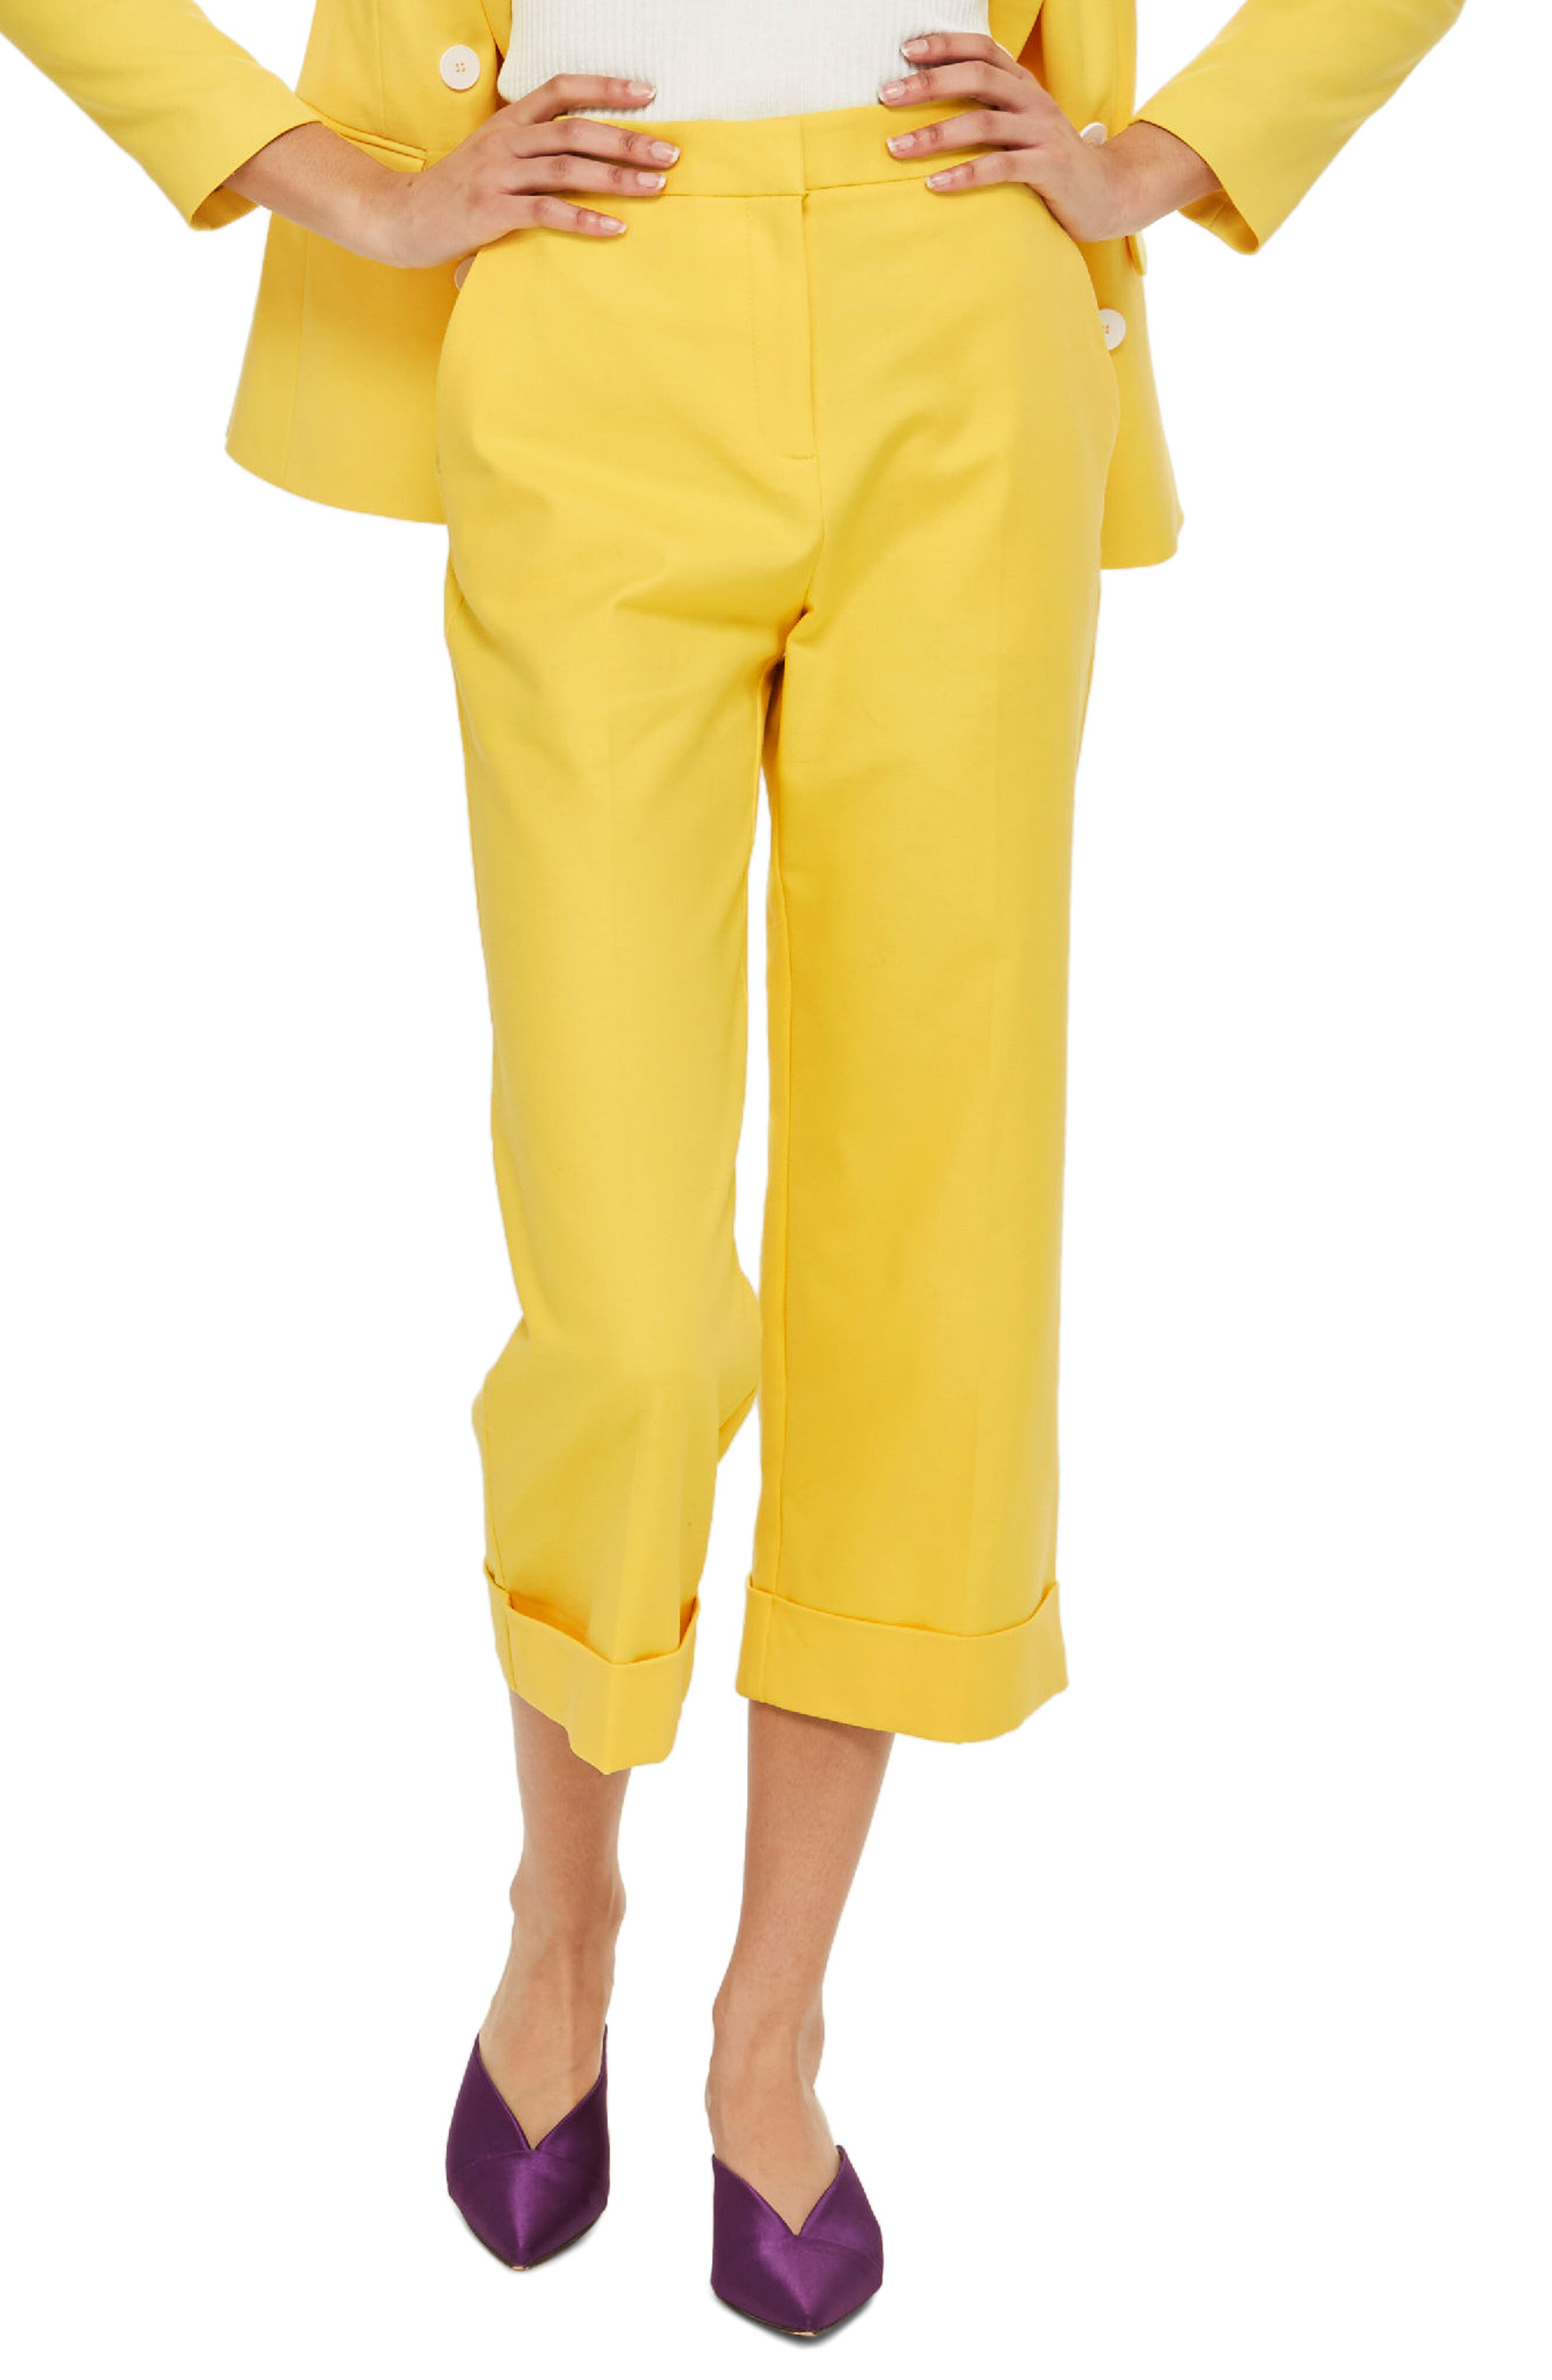 Milly Crop Suit Trousers,                         Main,                         color, 700